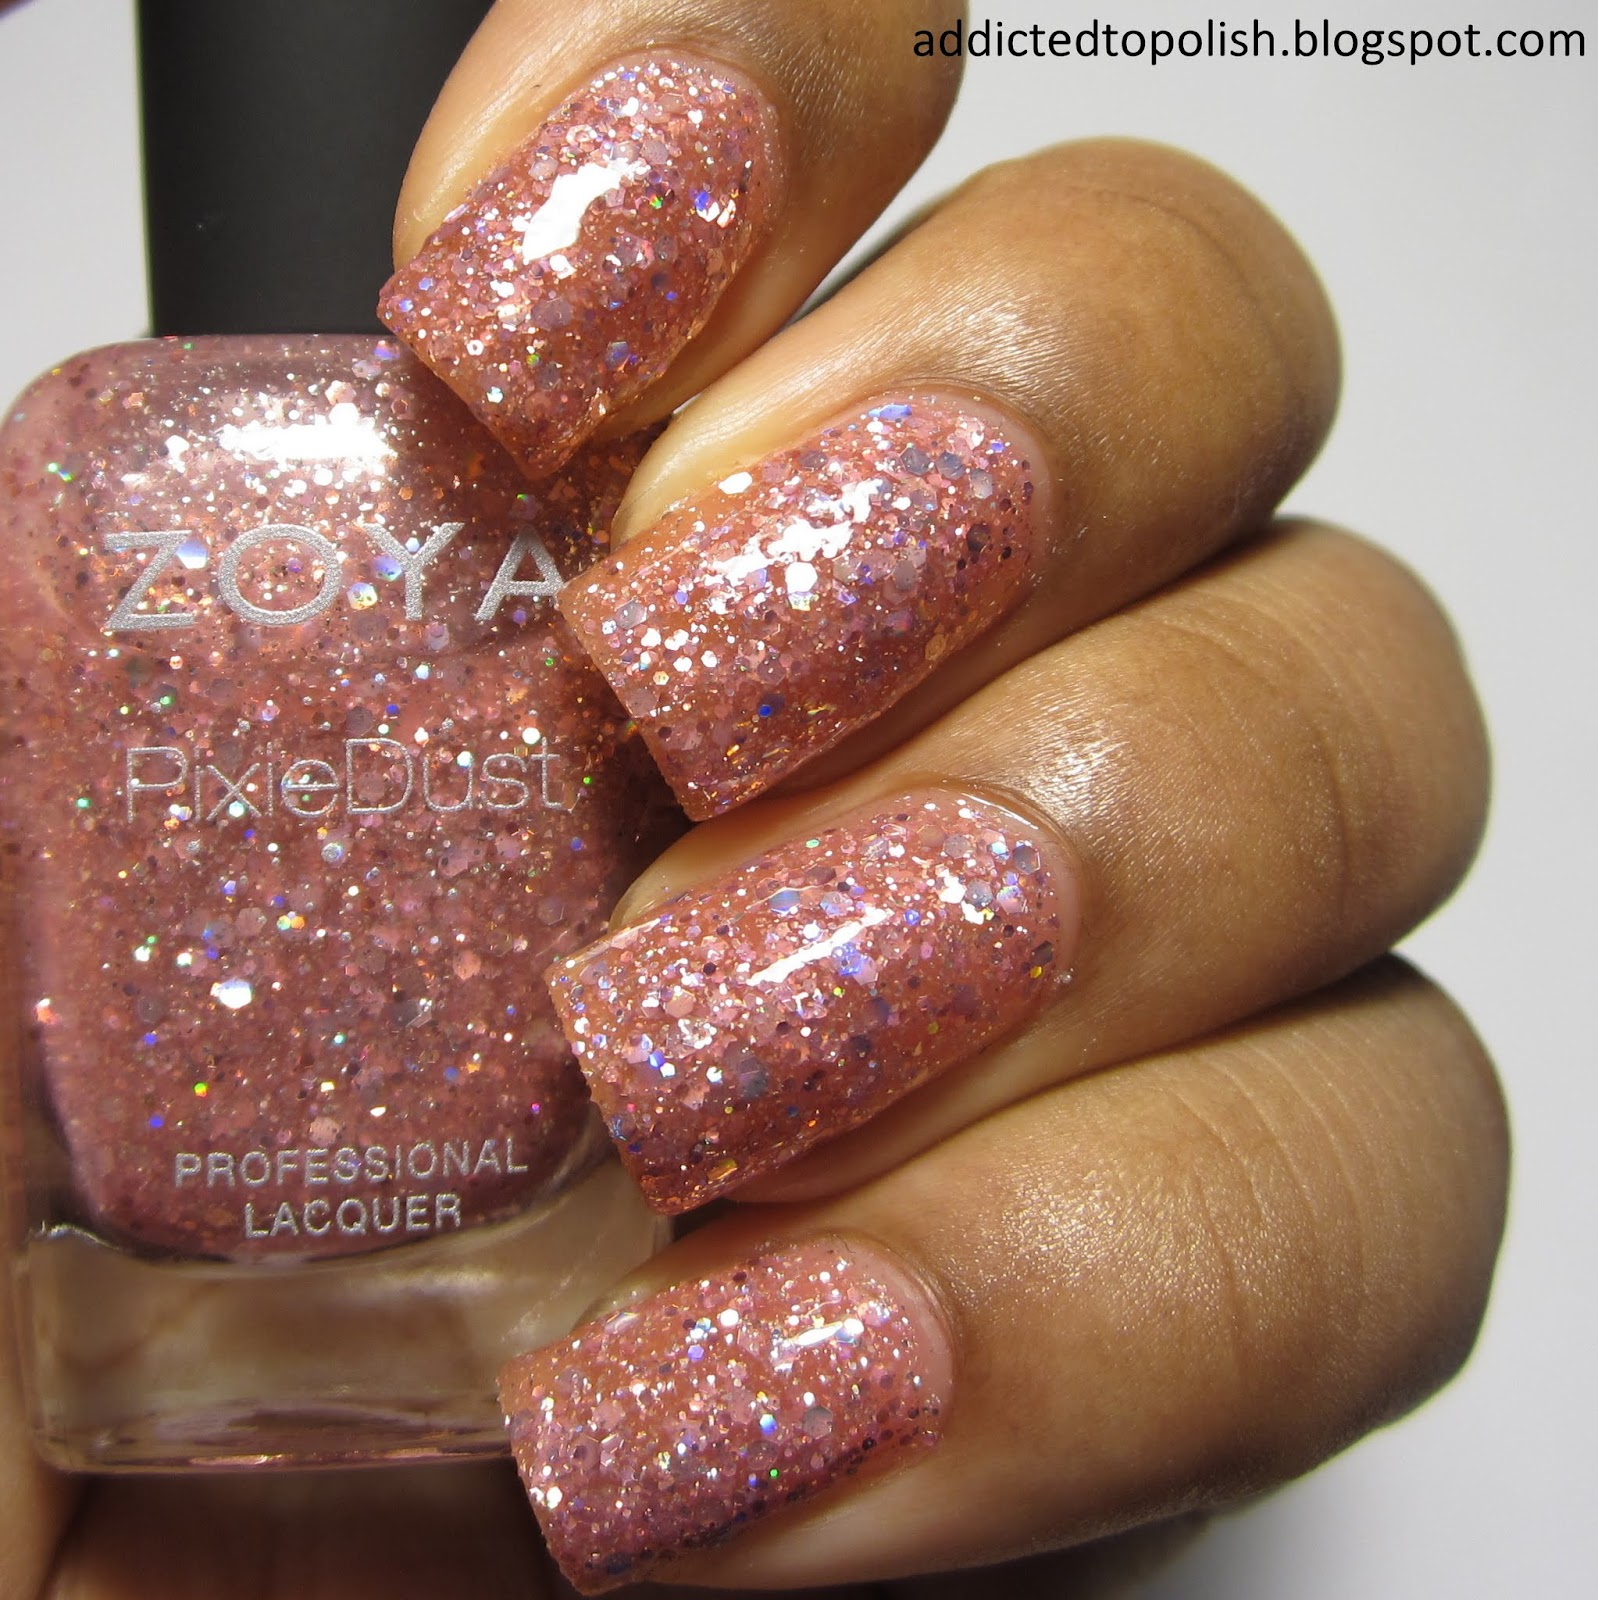 Zoya Ginni Magical PixieDust with topcoat